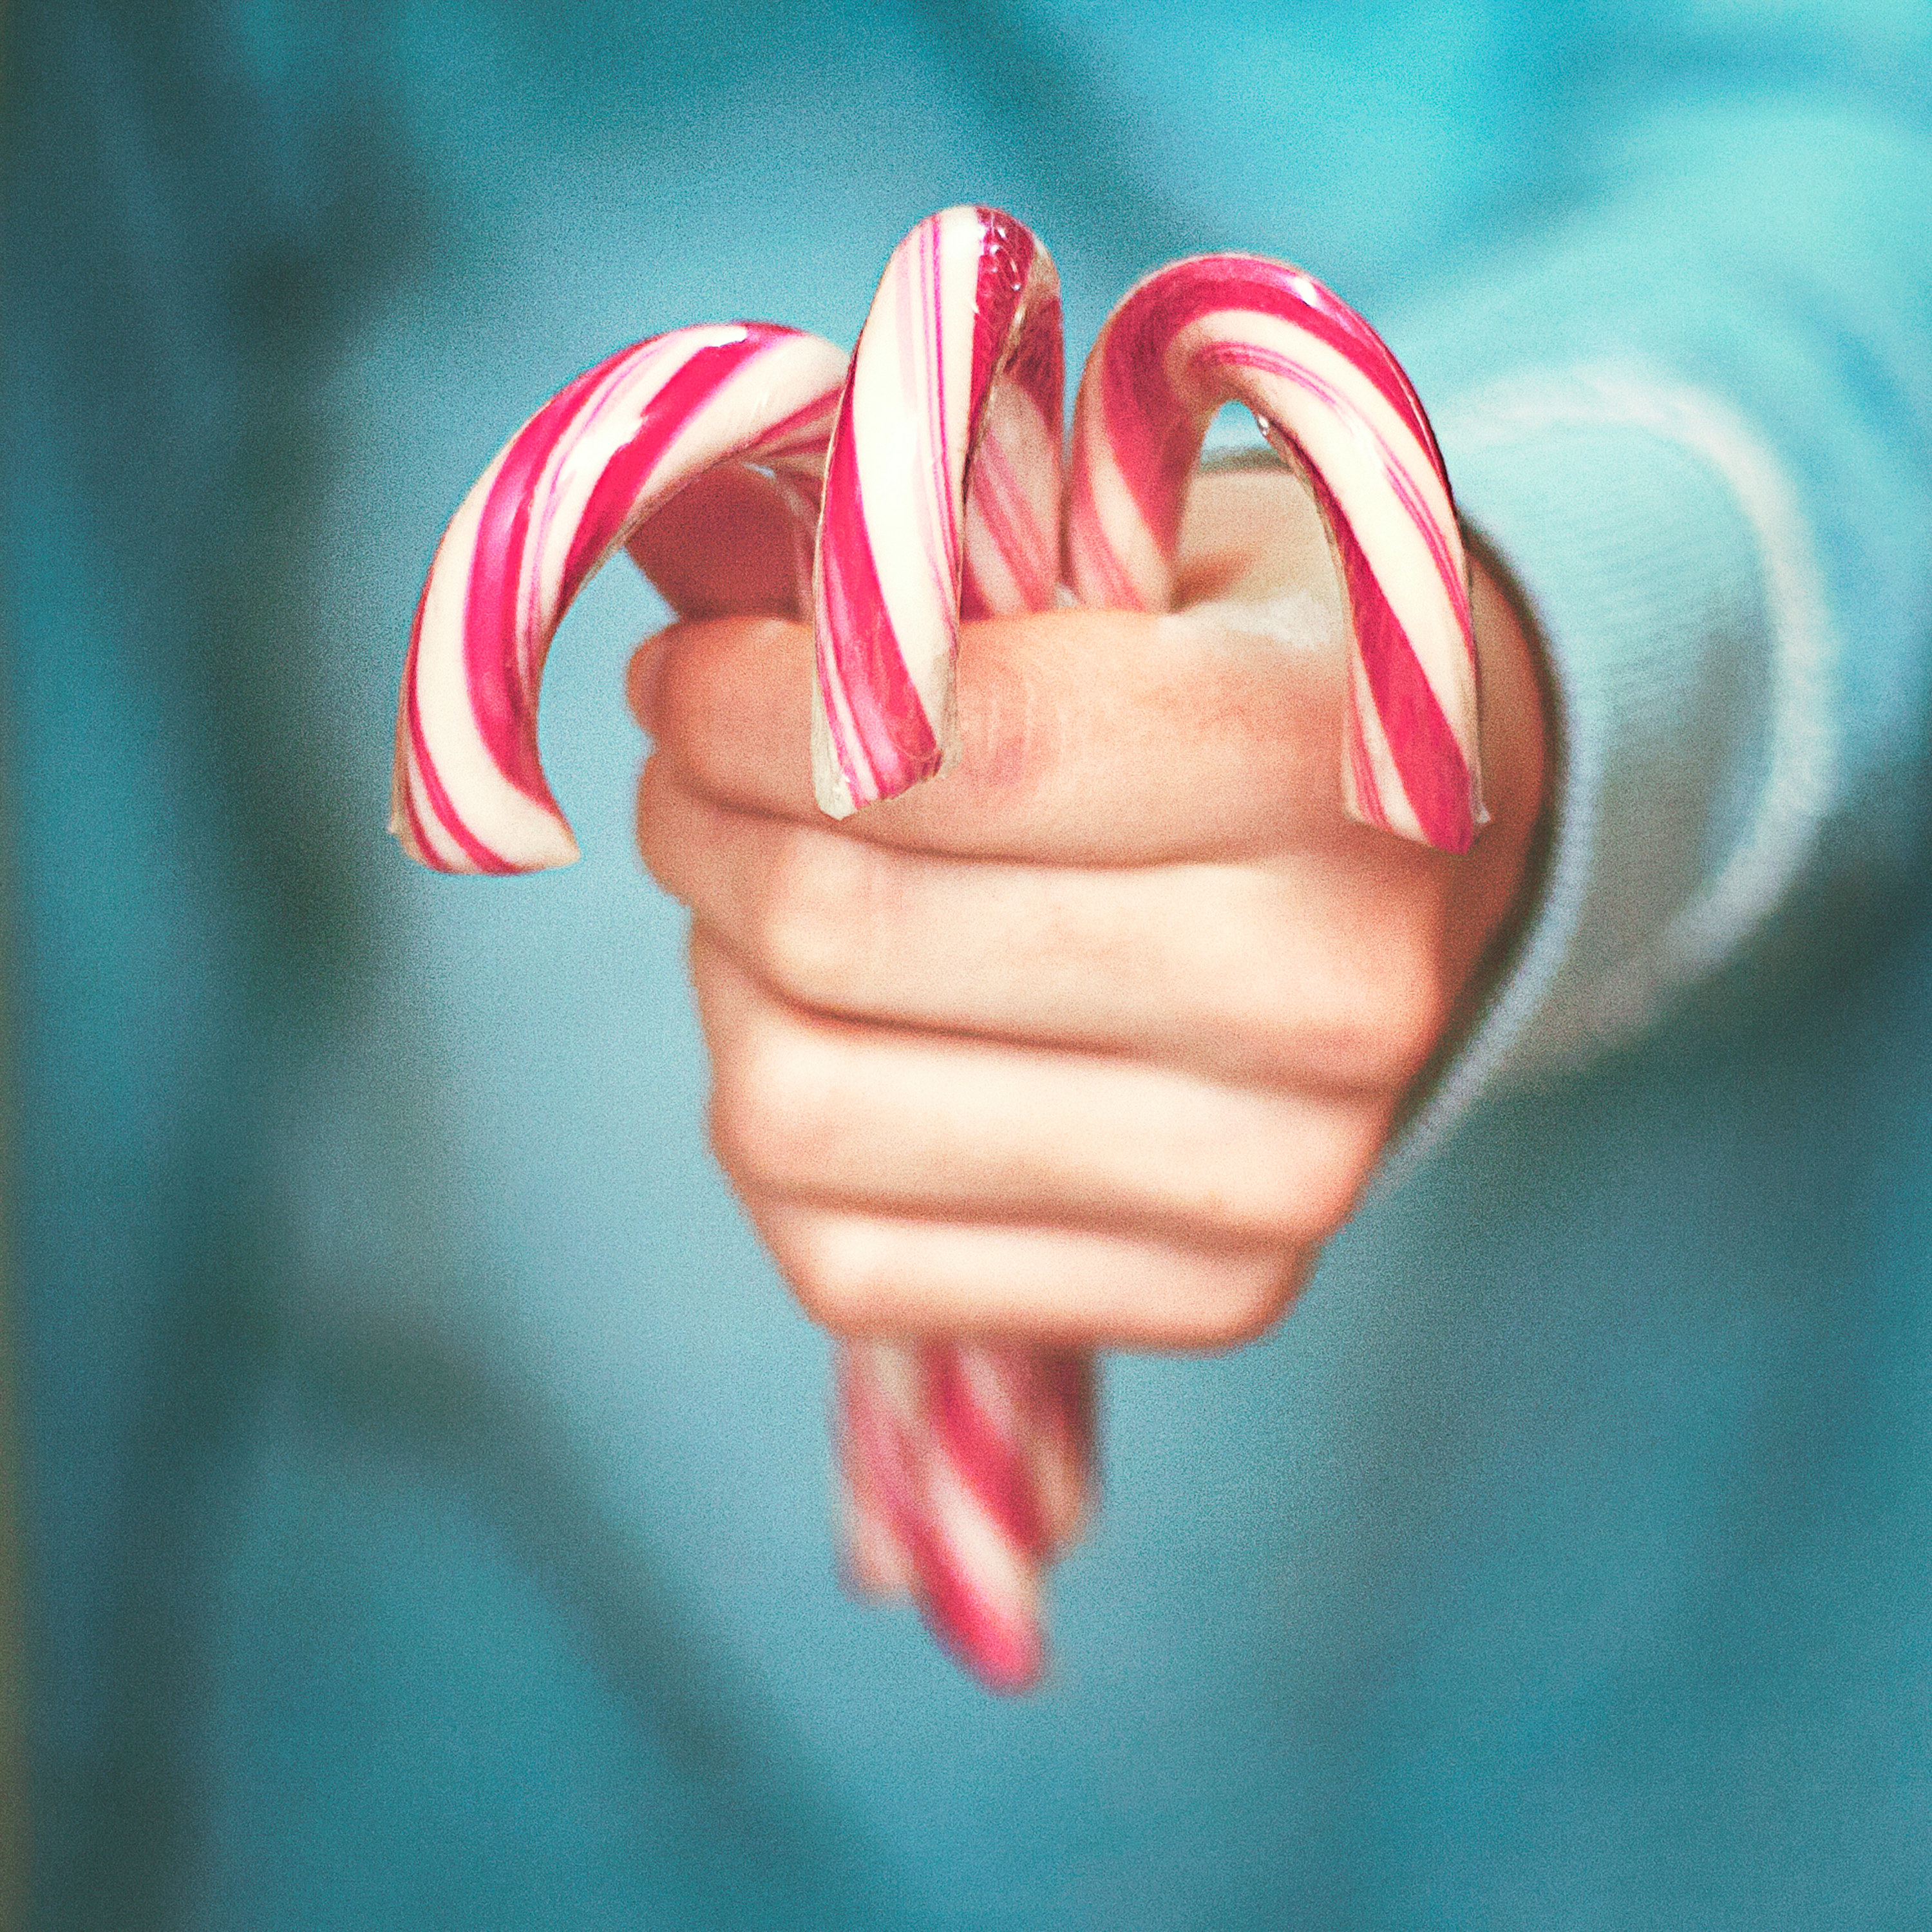 A hand holding out three candy canes.